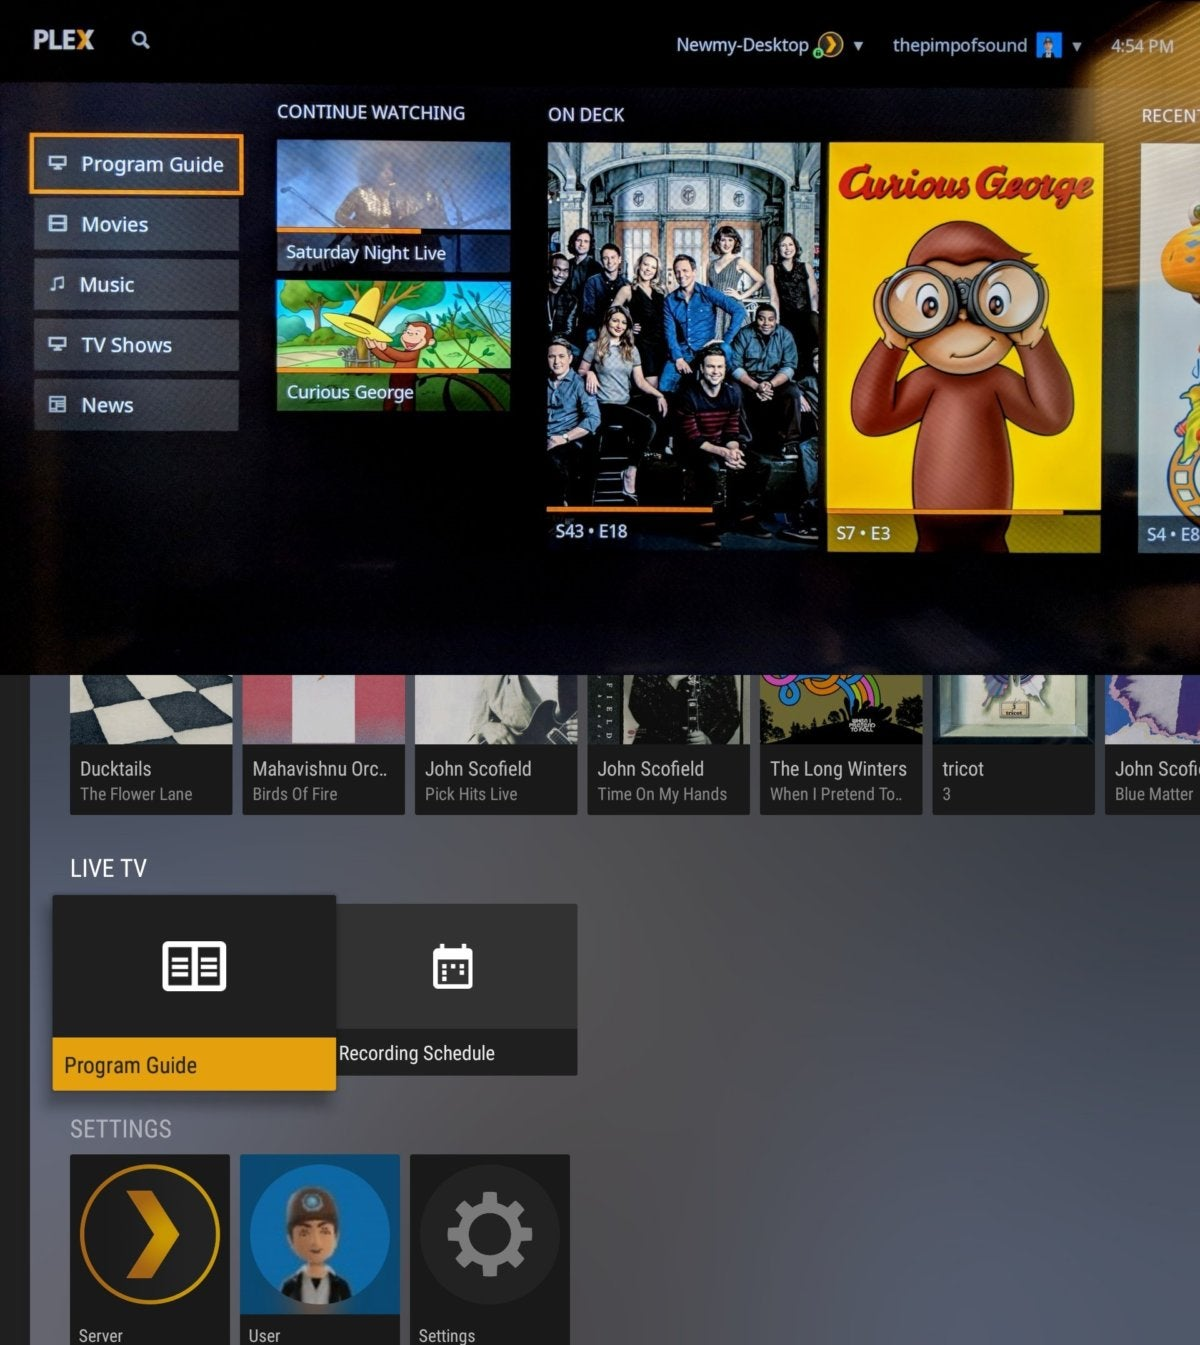 Plex DVR review: Still the best option for power users | IDG